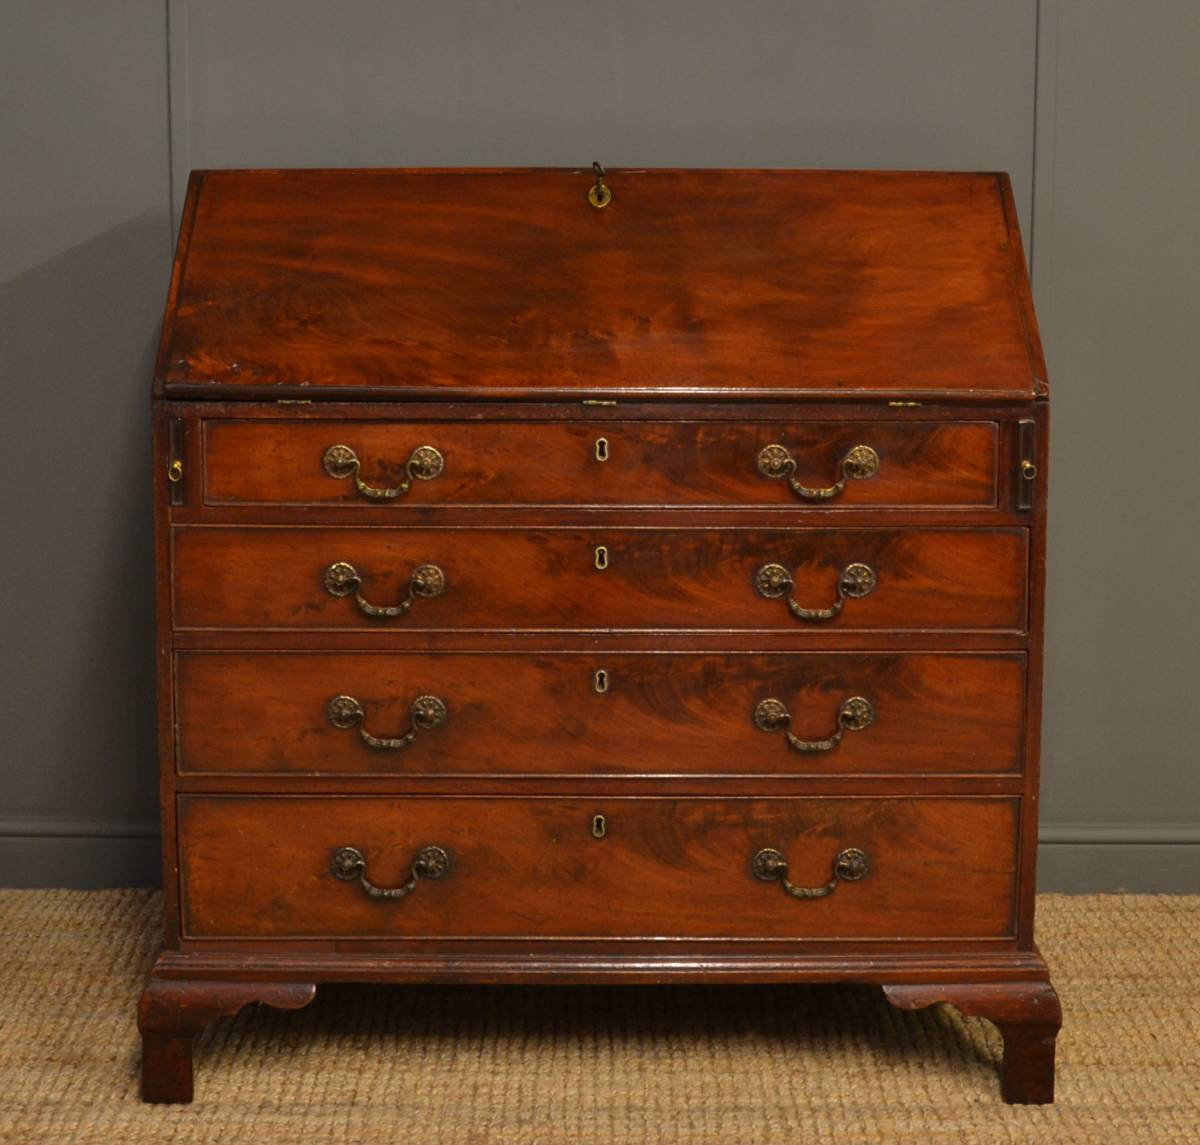 Antique Bureau dated October 5th 1778